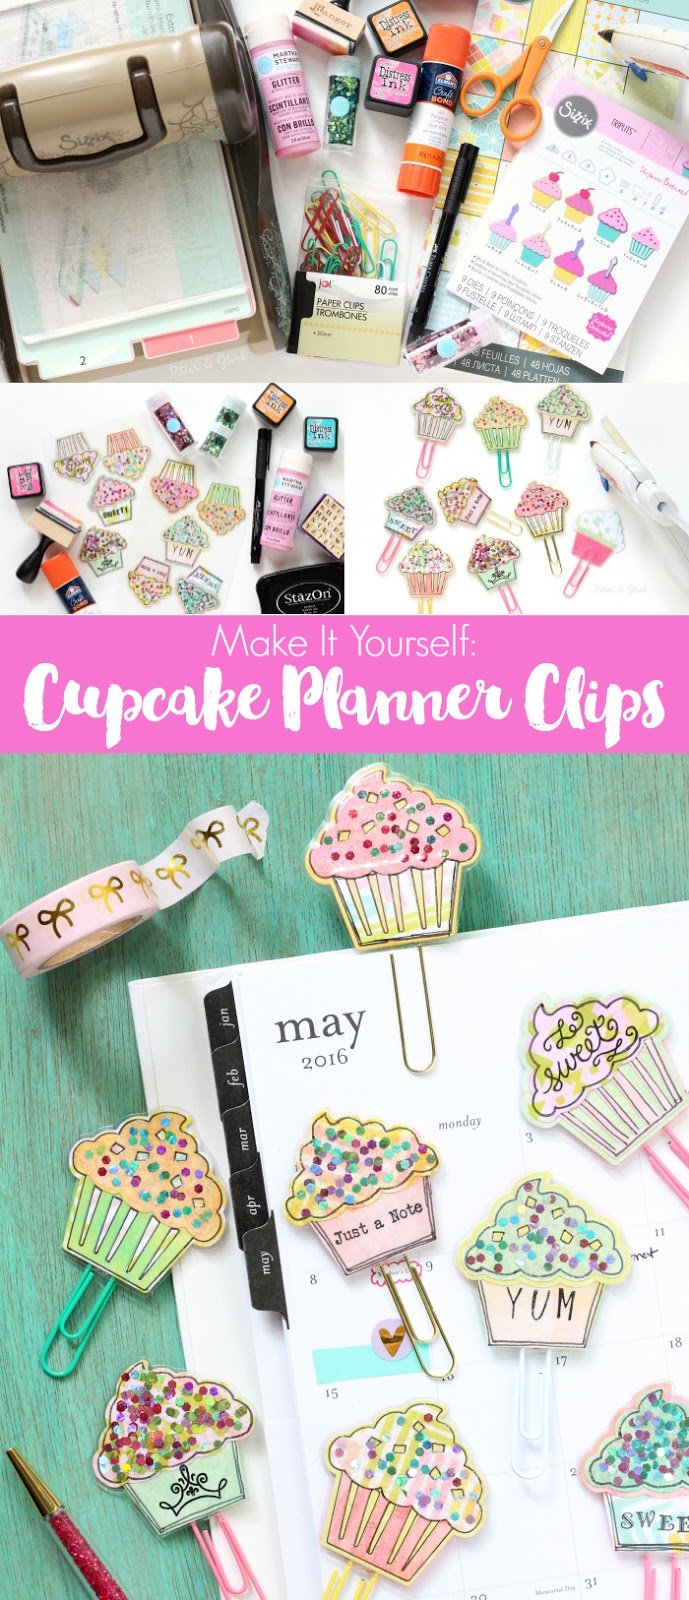 PitterAndGlinkHow to Make Sparkly Cupcake Planner Clips